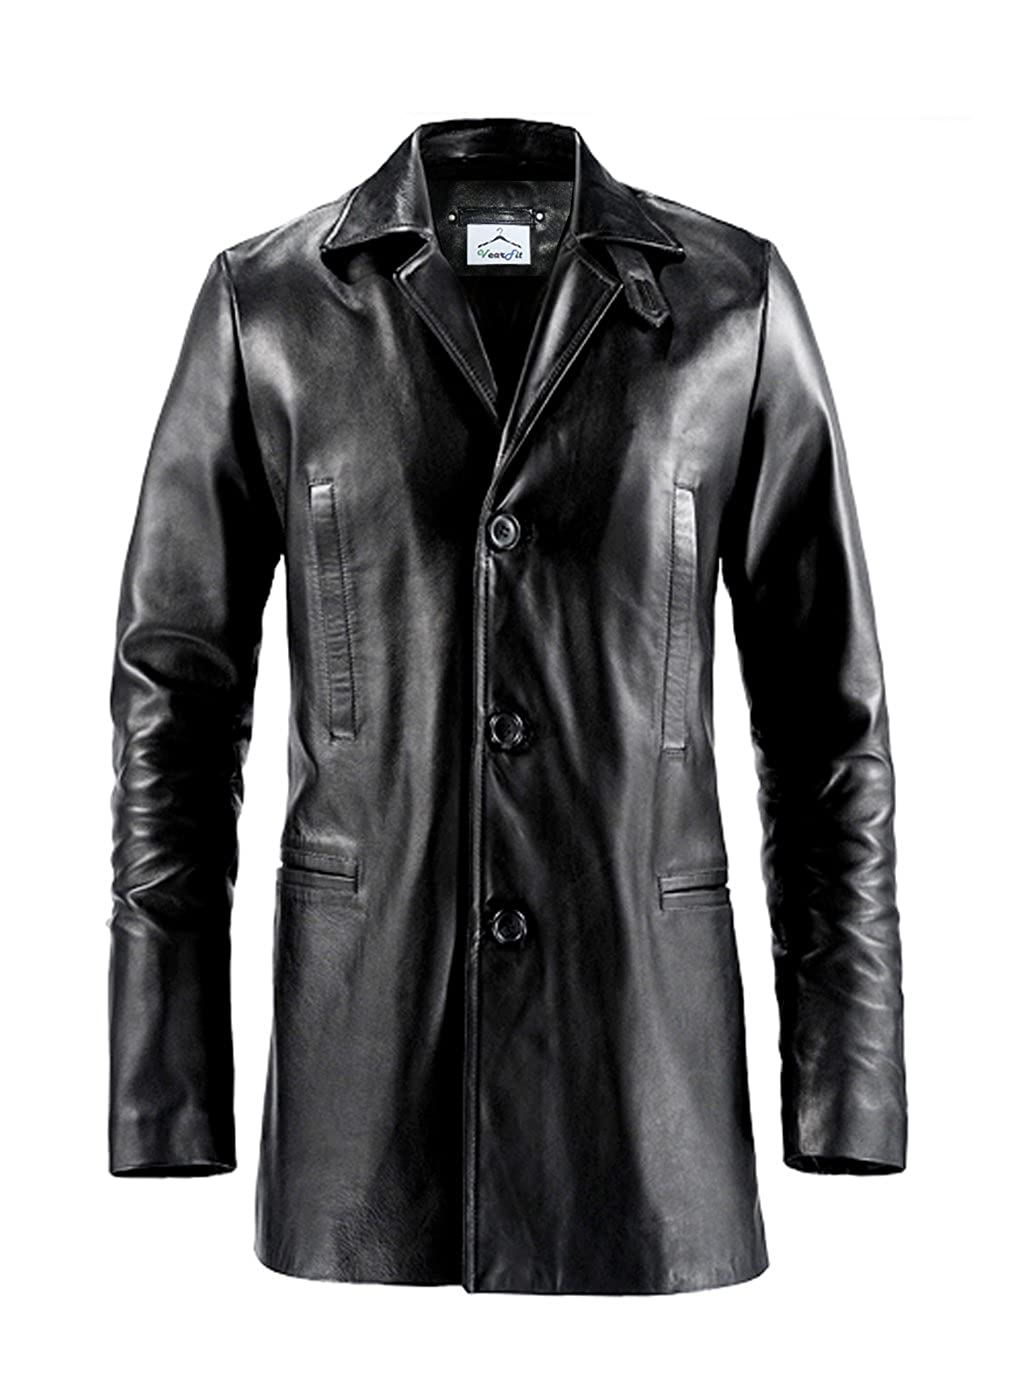 VearFit Max Payne Mark Wahlberg 3-button Real Leather Trench Coat Blazar for Men HF16-M16